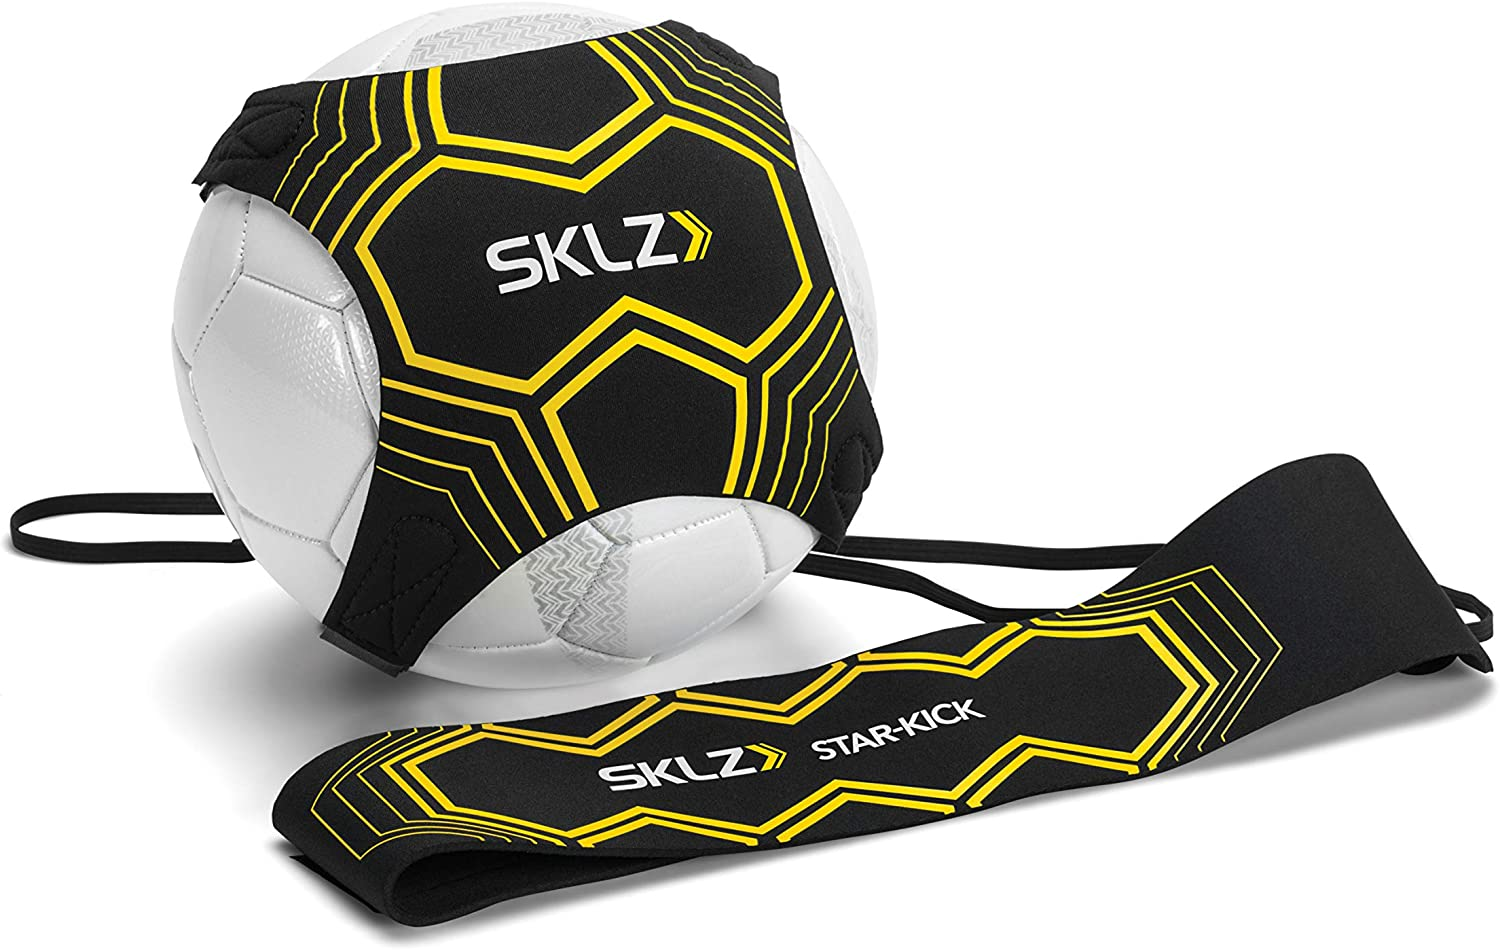 SKLZ Star Kick Hands Free Solo Soccer Trainer Fits Ball Size 3, 4, and 5